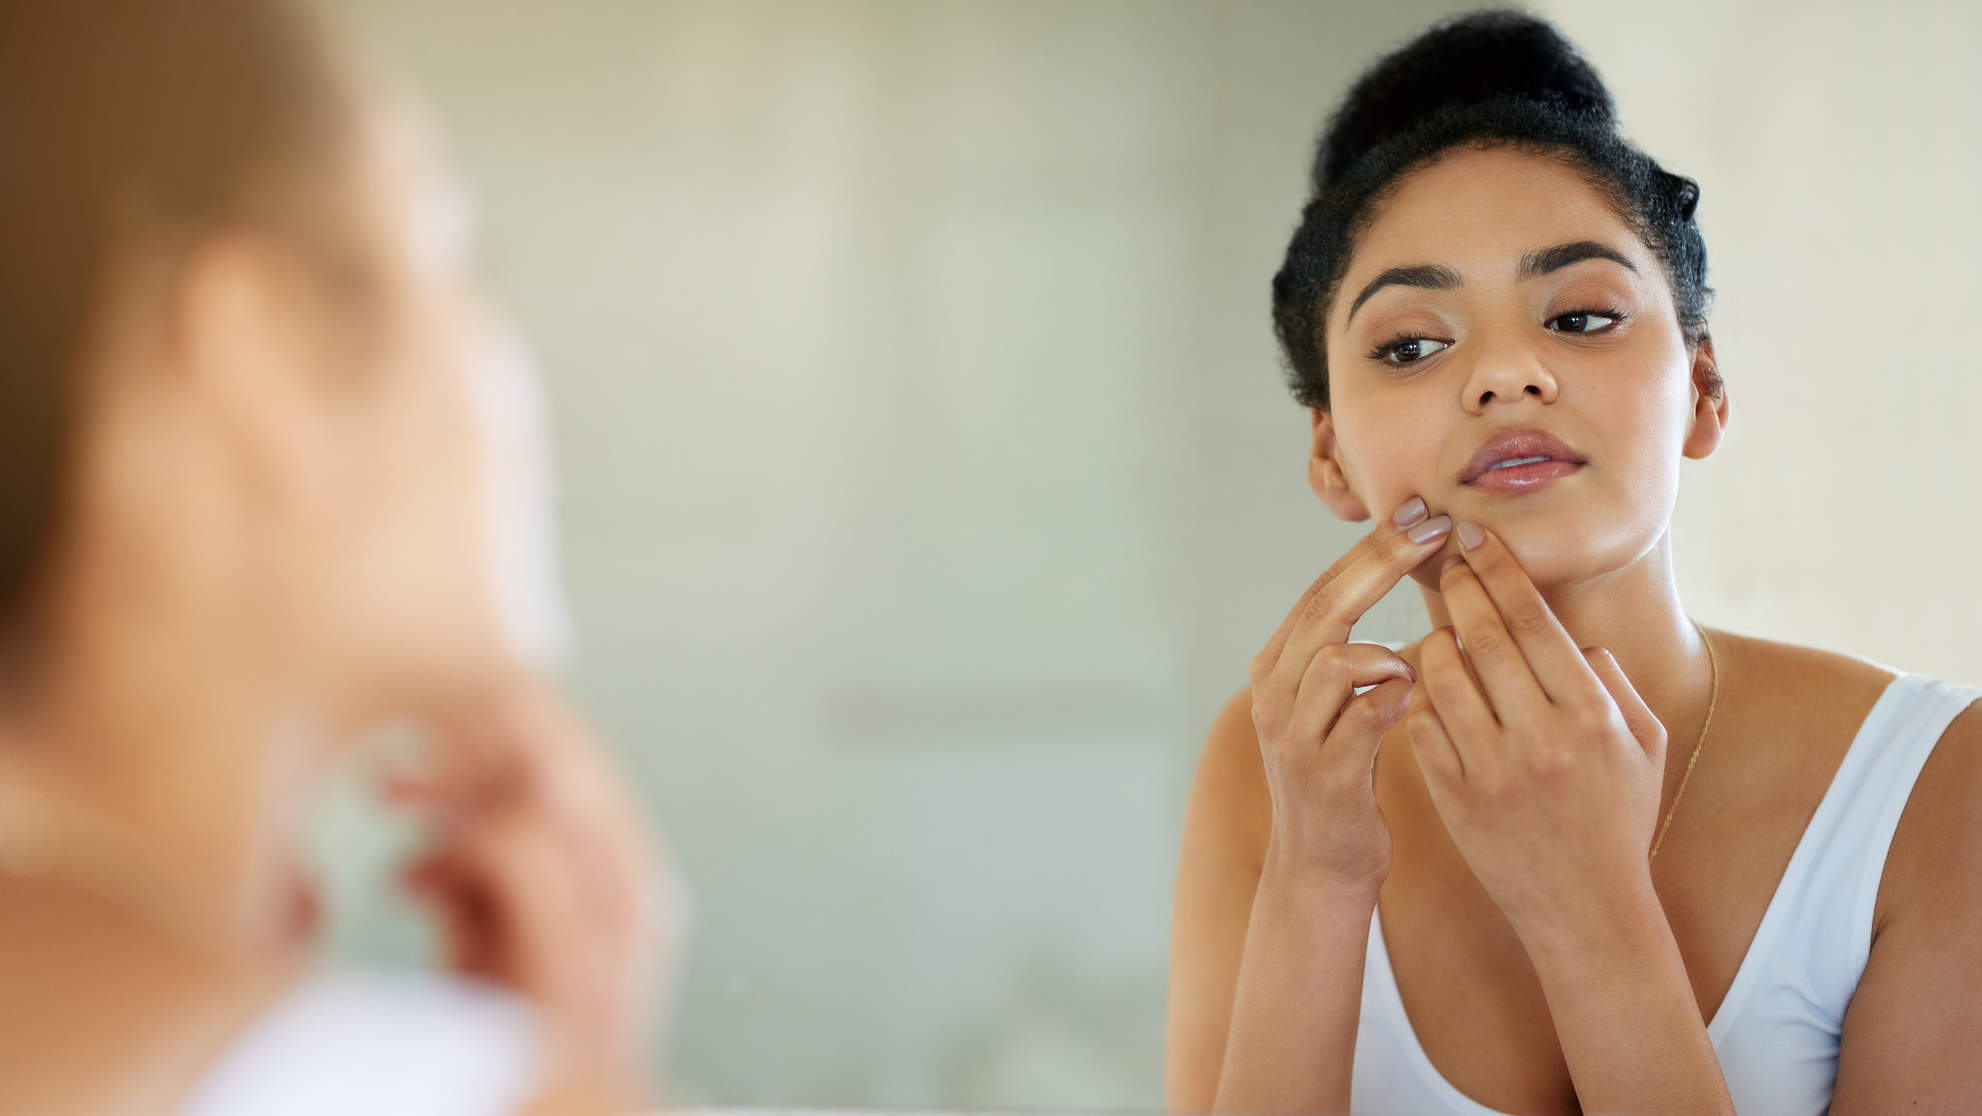 3 Ways to Get Your Skin Under Control After Going Off Birth Control